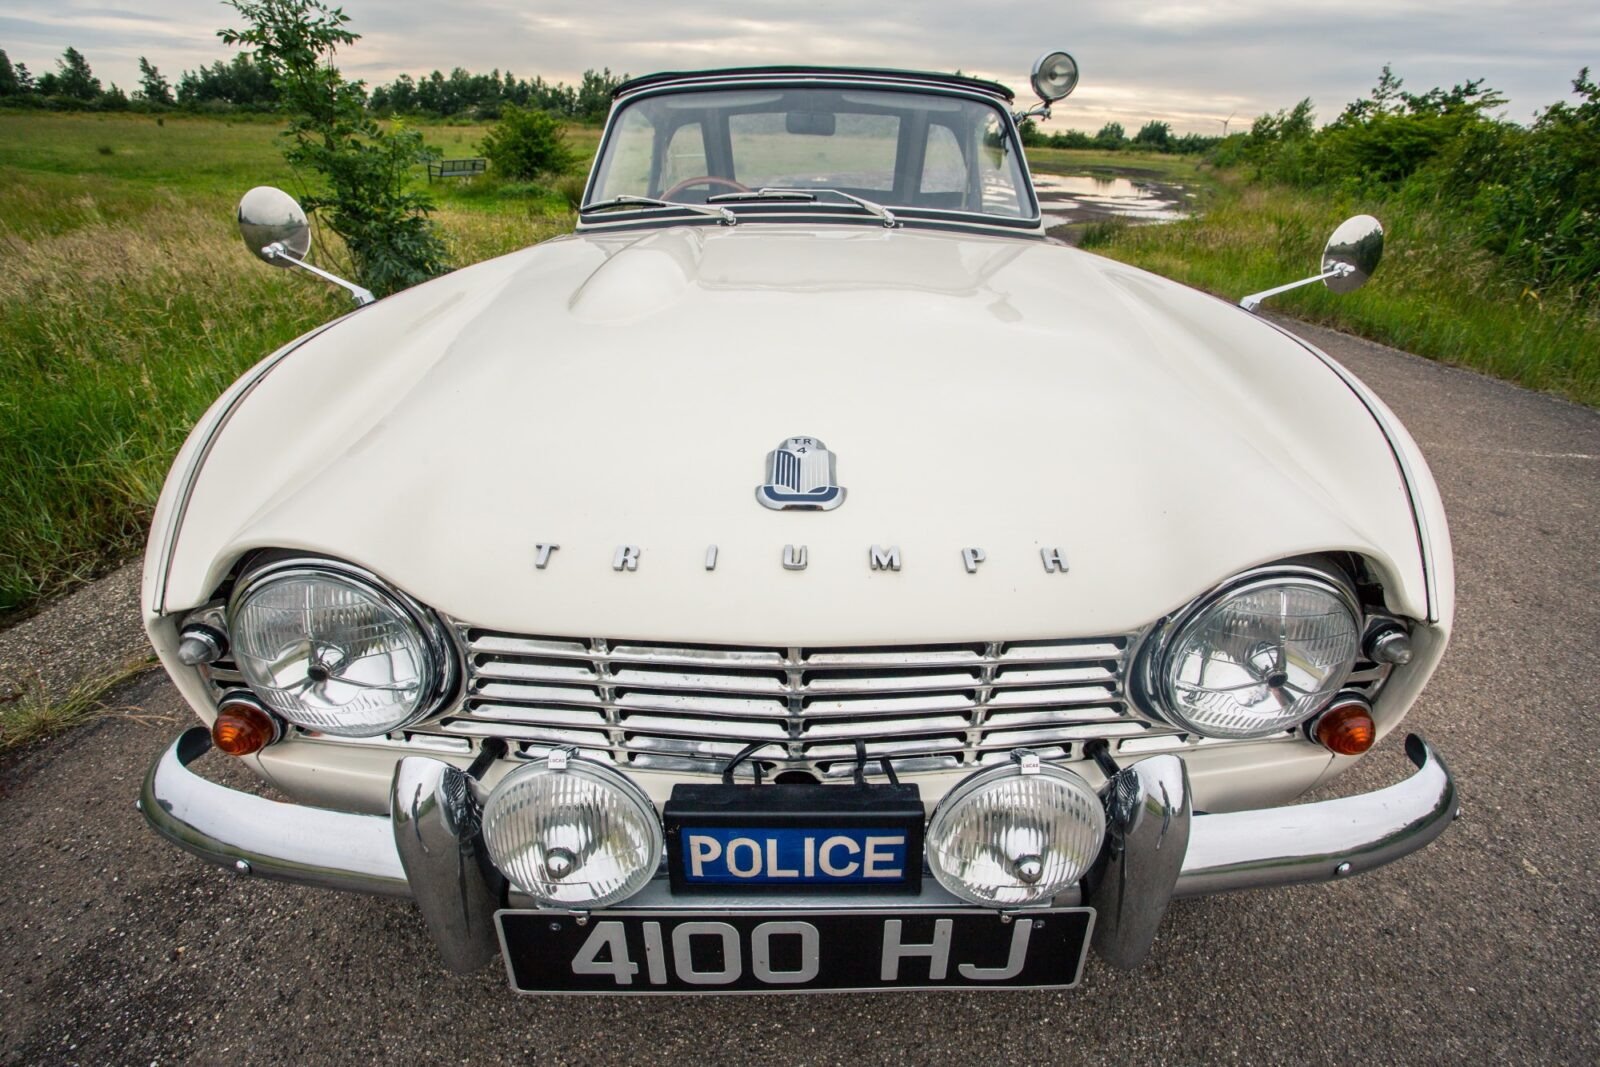 Triumph TR4 Police Car 1 1600x1067 - 'High Speed Pursuit' 1962 Triumph TR4 Police Car